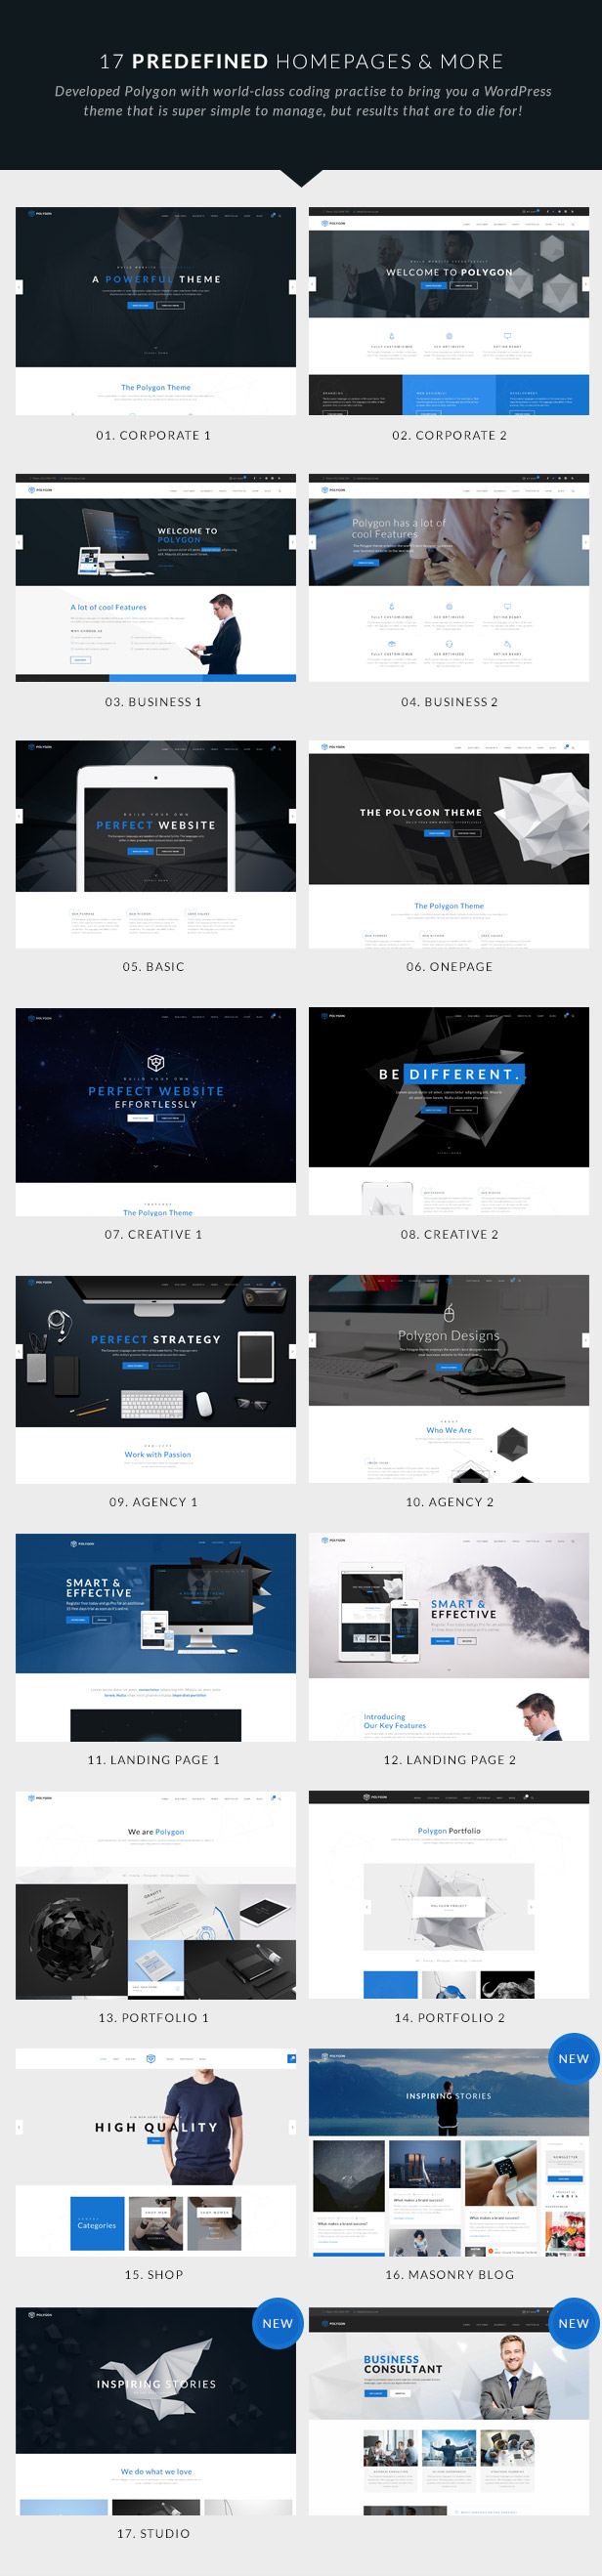 Business Corporation WordPress Theme - Beautiful Homepages